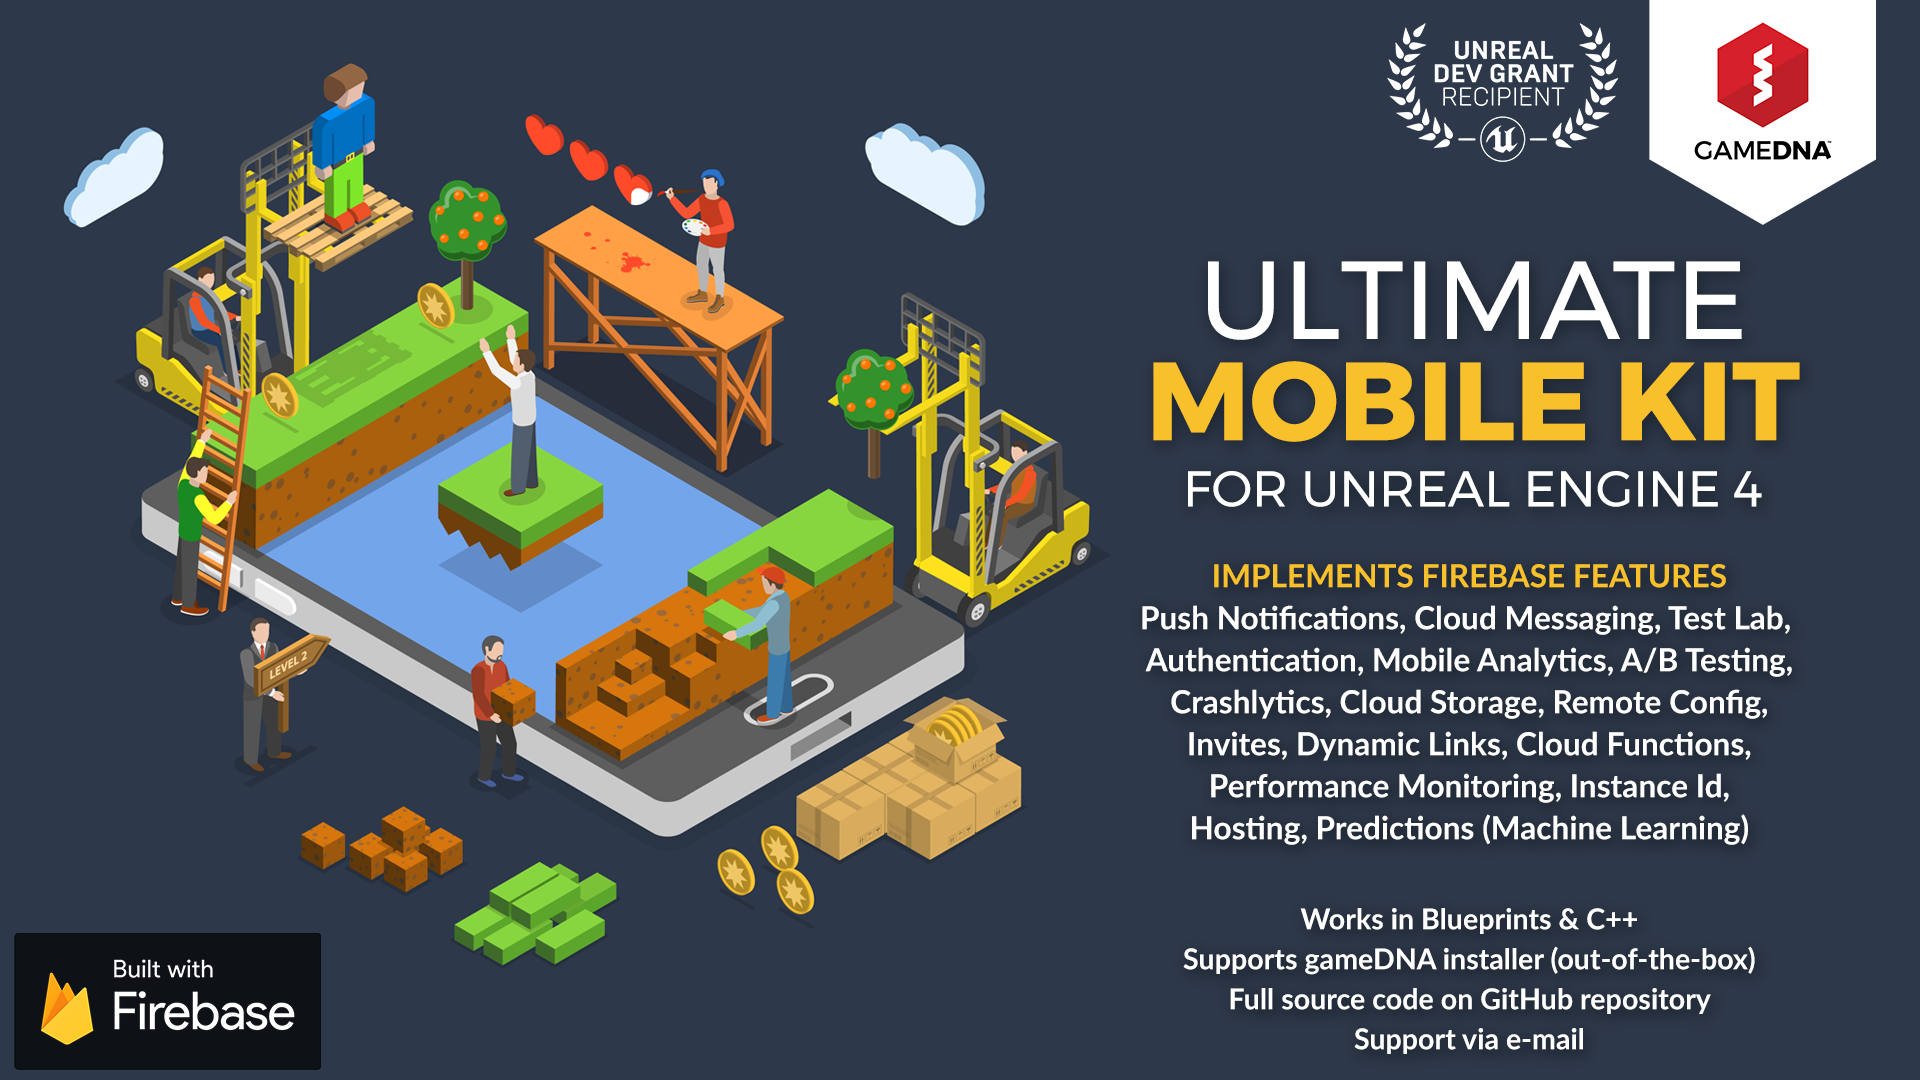 Ultimate Mobile Kit Firebase by gameDNA in Code Plugins - UE4